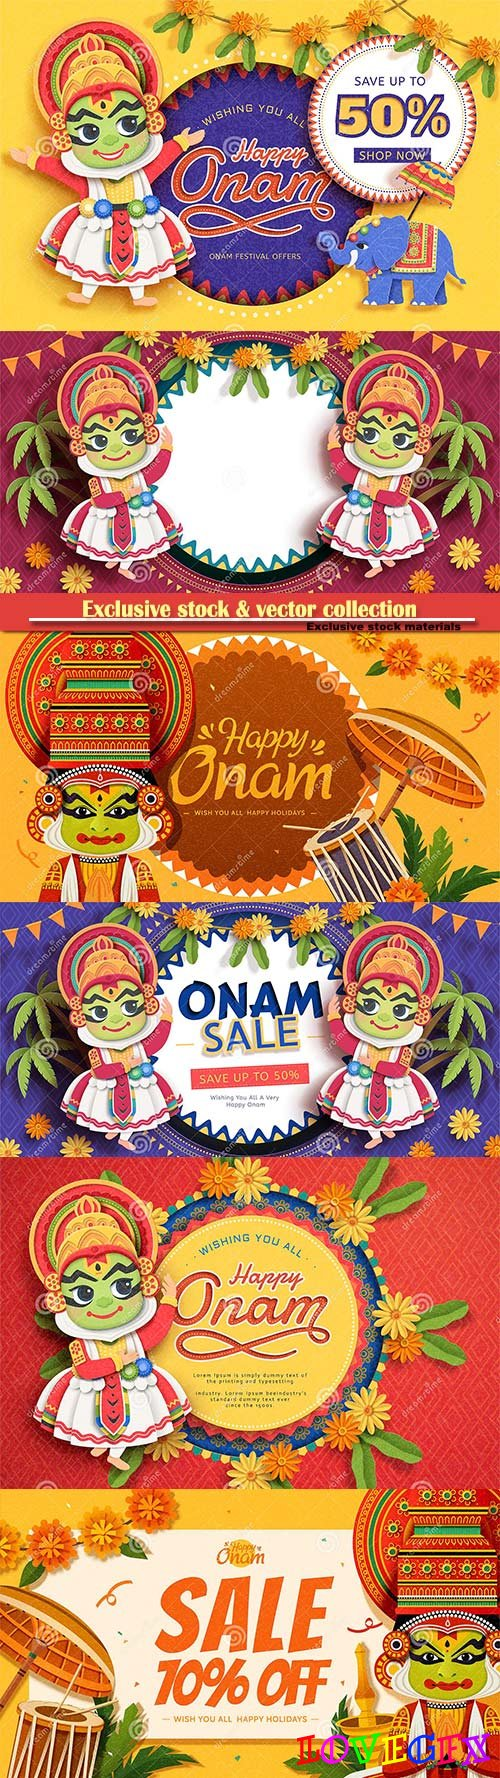 Happy Onam festival sale design with cute Kathakali dancer